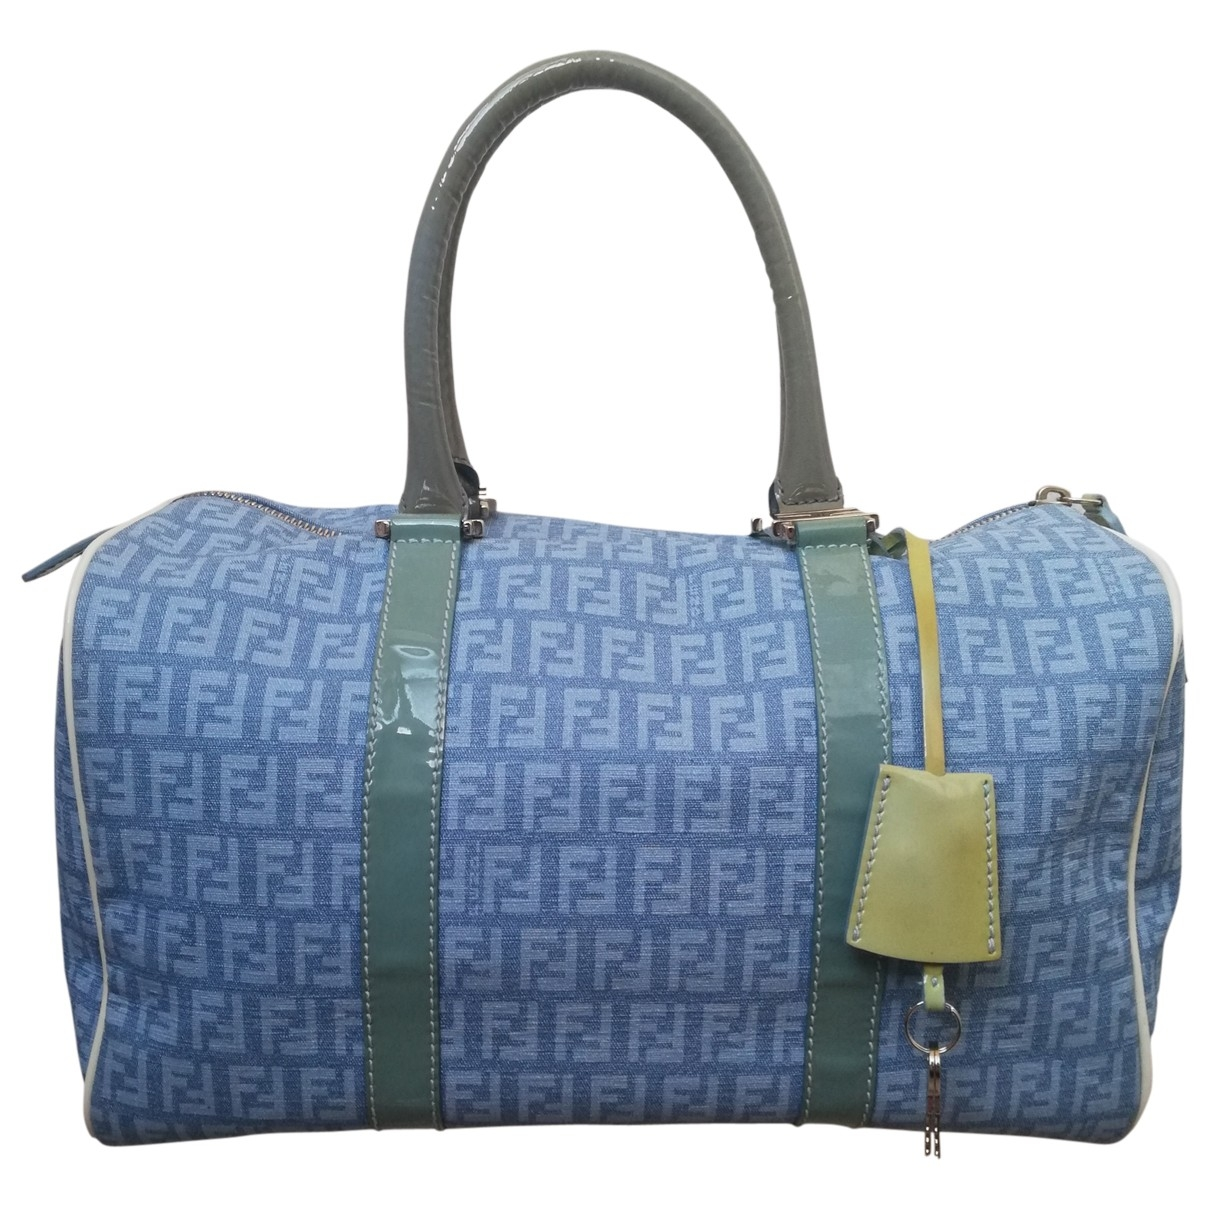 Fendi \N Turquoise Cloth handbag for Women \N